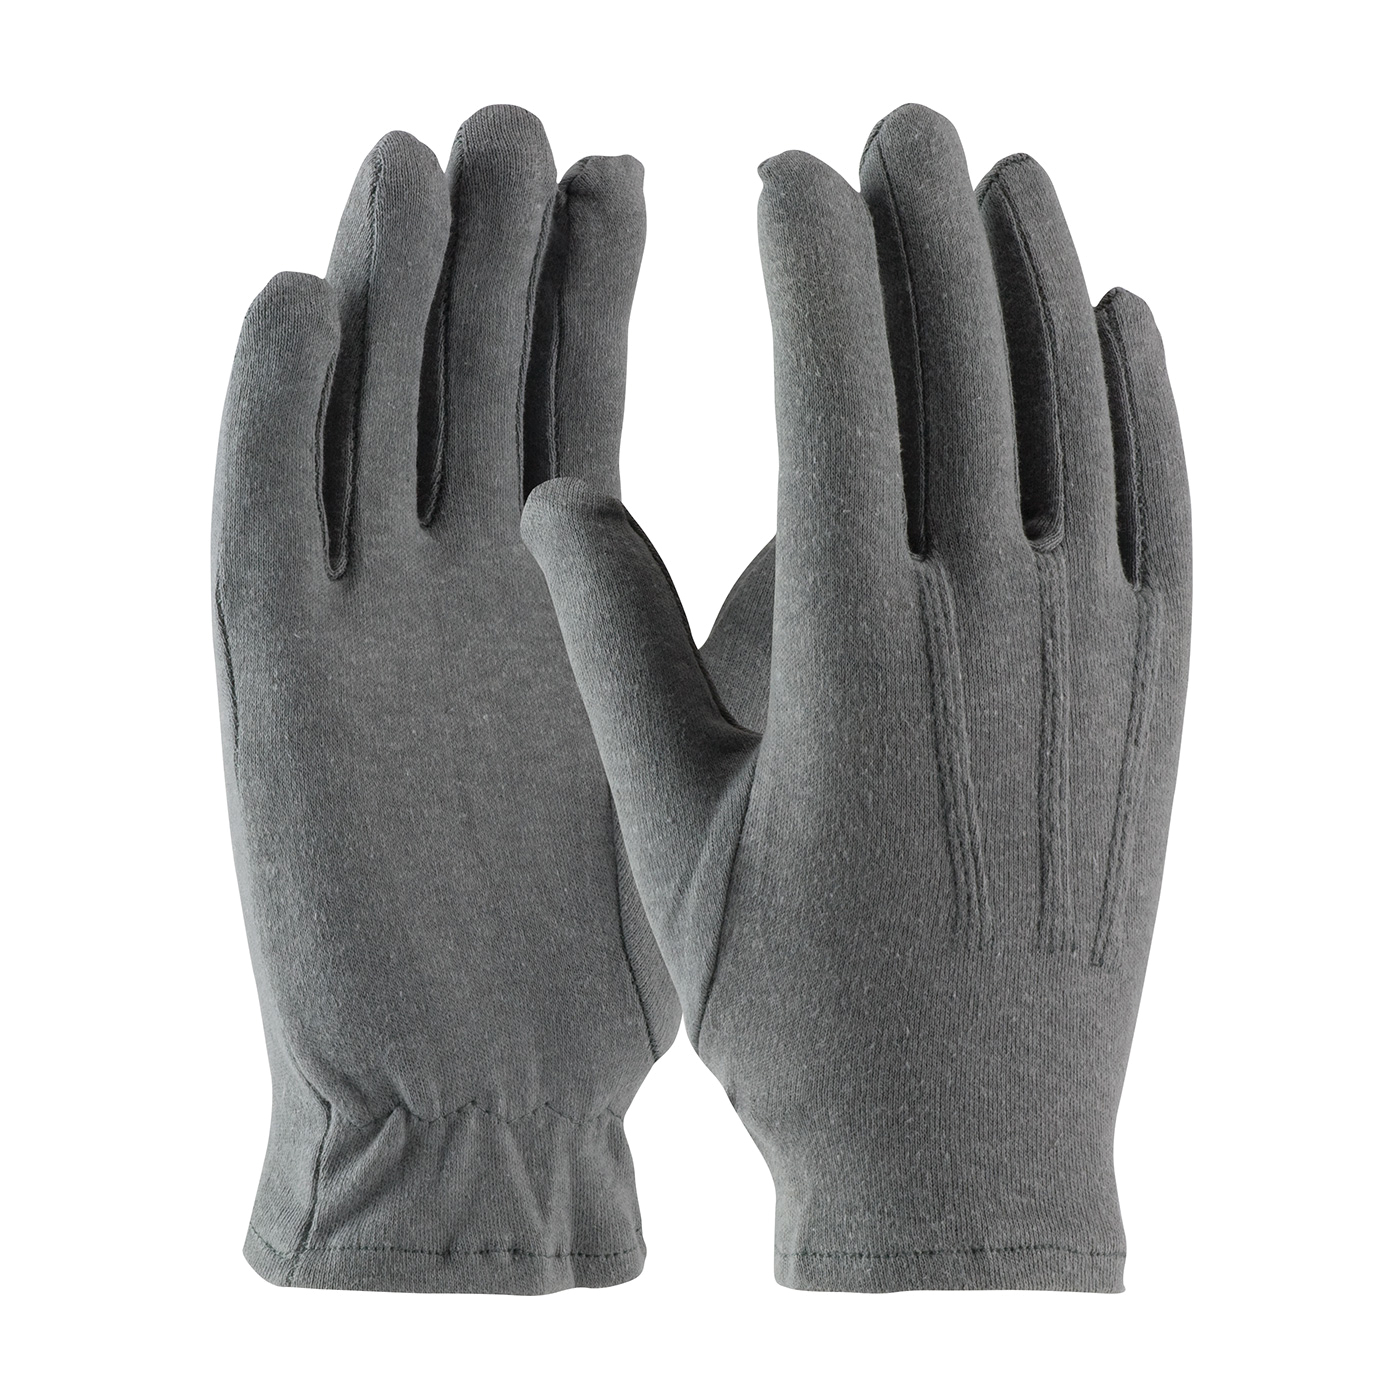 PIP® Cabaret™ 130-100GM Cabaret™ Mens Dress Gloves With Raised Stitching on Back, Cotton, Gray, Unlined Lining, Open Cuff, 9.7 in L, Resists: Abrasion and Cut